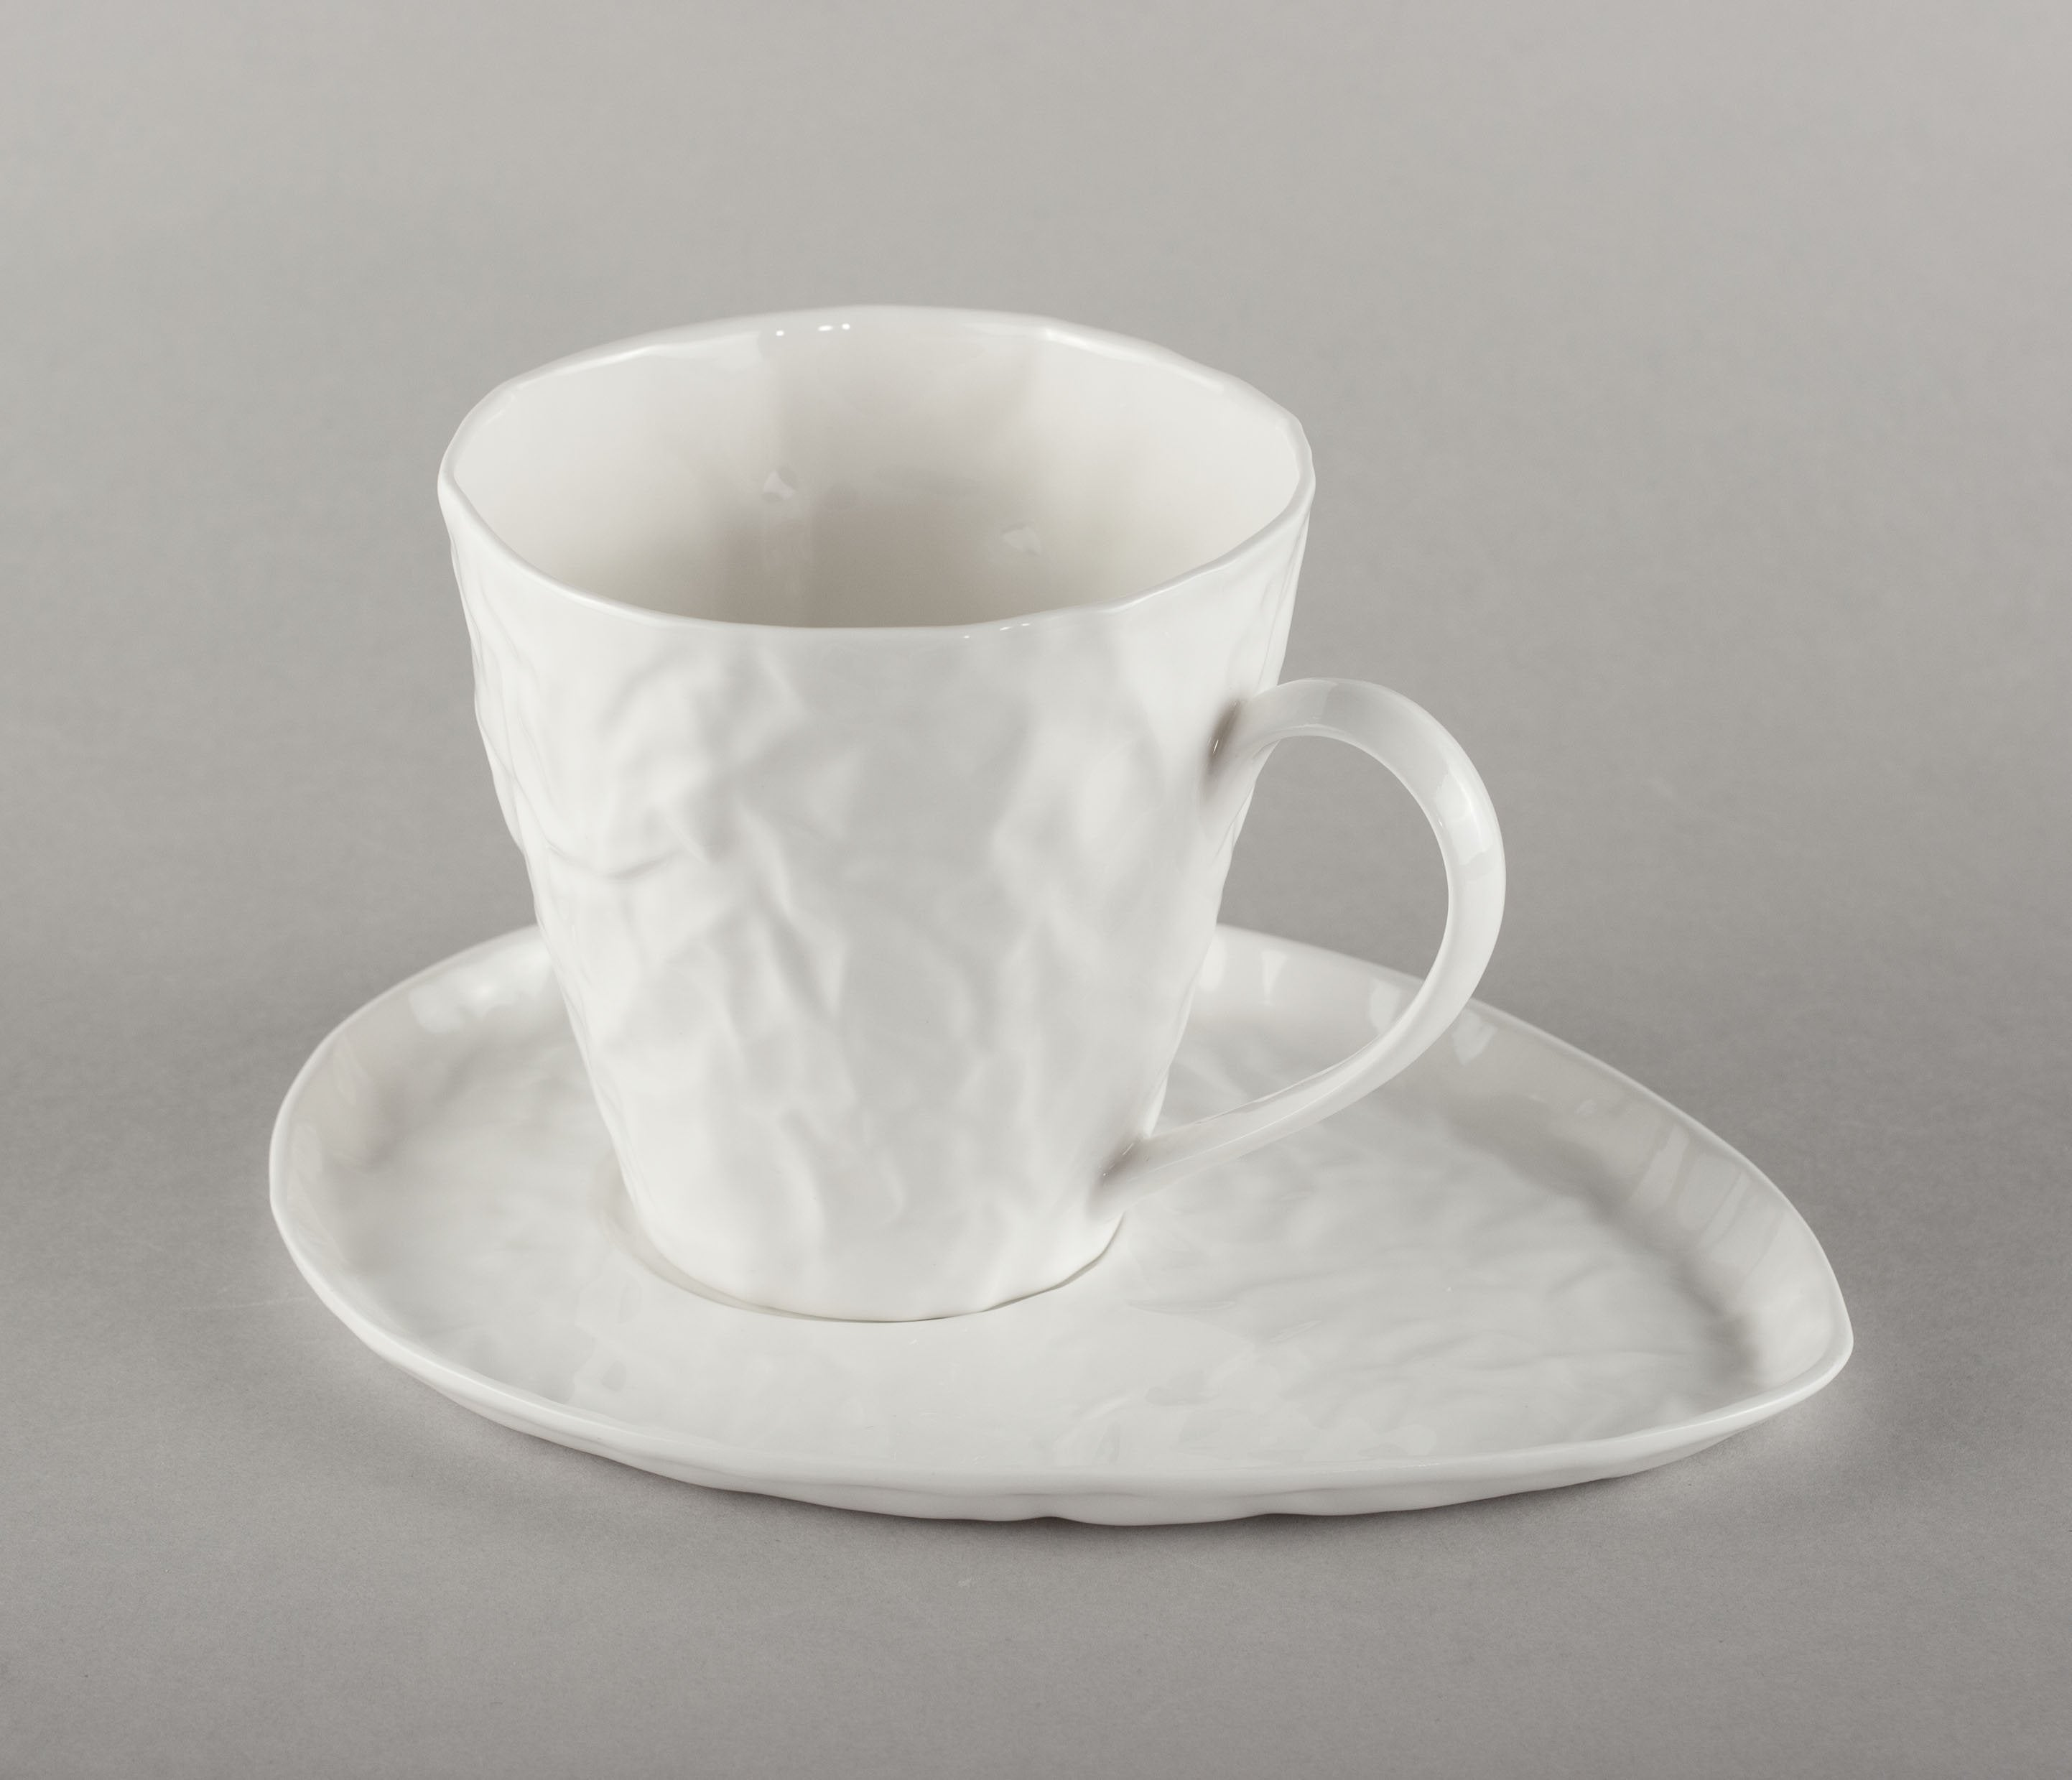 Porcelain Crumpled Tea Co Mug Base (mug not included)